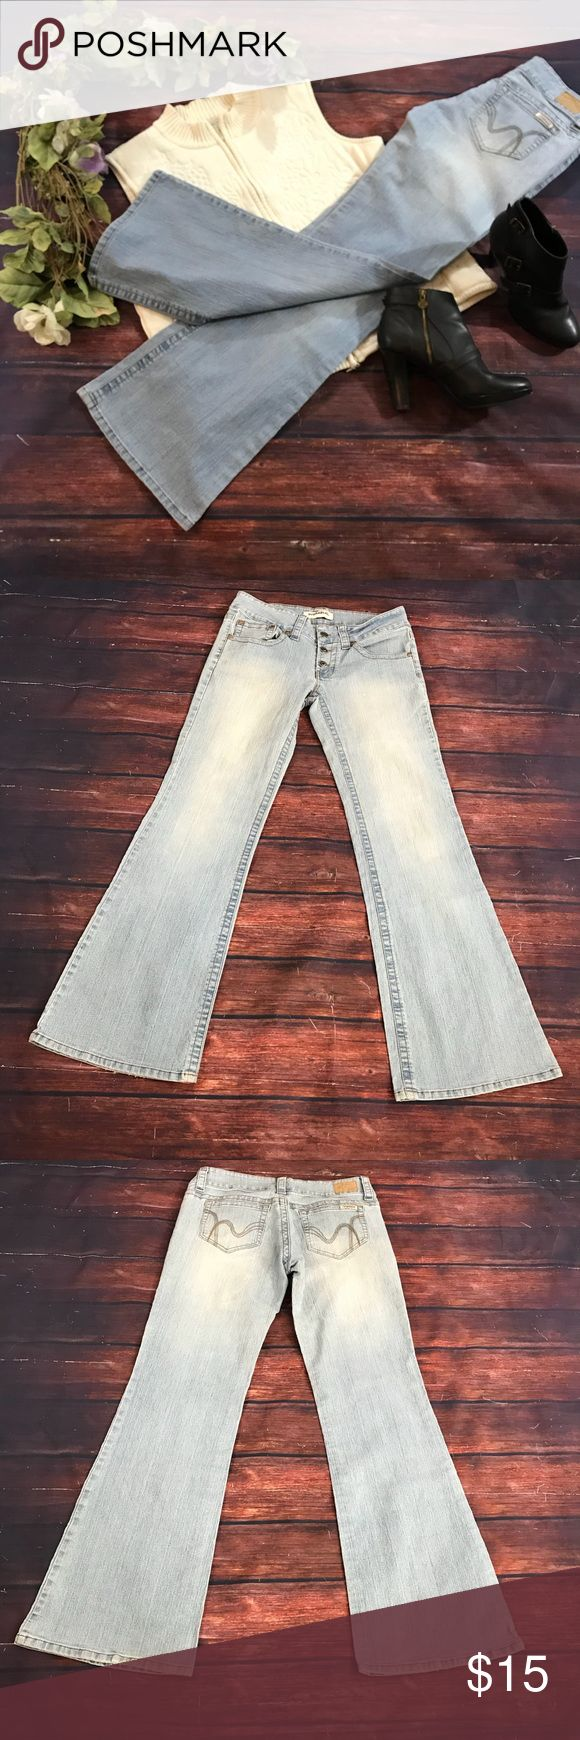 Hydraulic 11/12 light wash button up jeans Light wash 11/12 Hydraulic jeans. Three button closure.  Five pocket.  Light spot on front. See picture. Measurements in pictures.    (758) Hydraulic Jeans